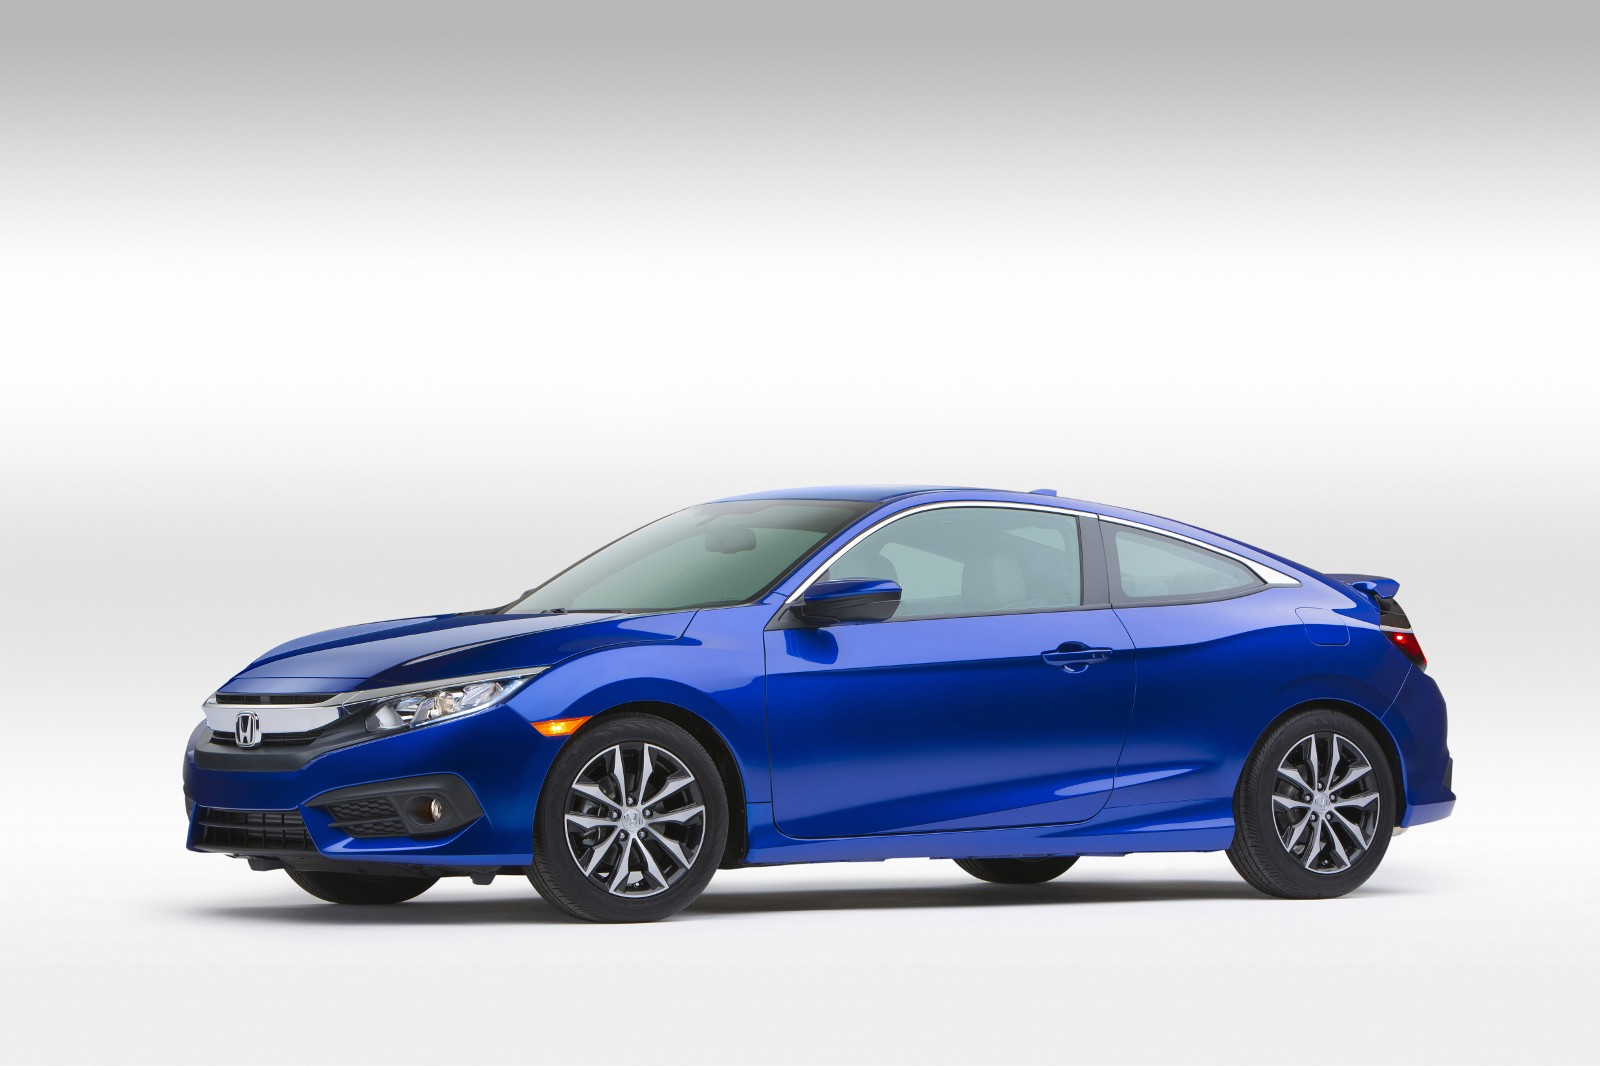 2016 Honda Civic Coupe Revealed With Bigger Cabin Turbo Engine 2008 Interior Wiring Diagram